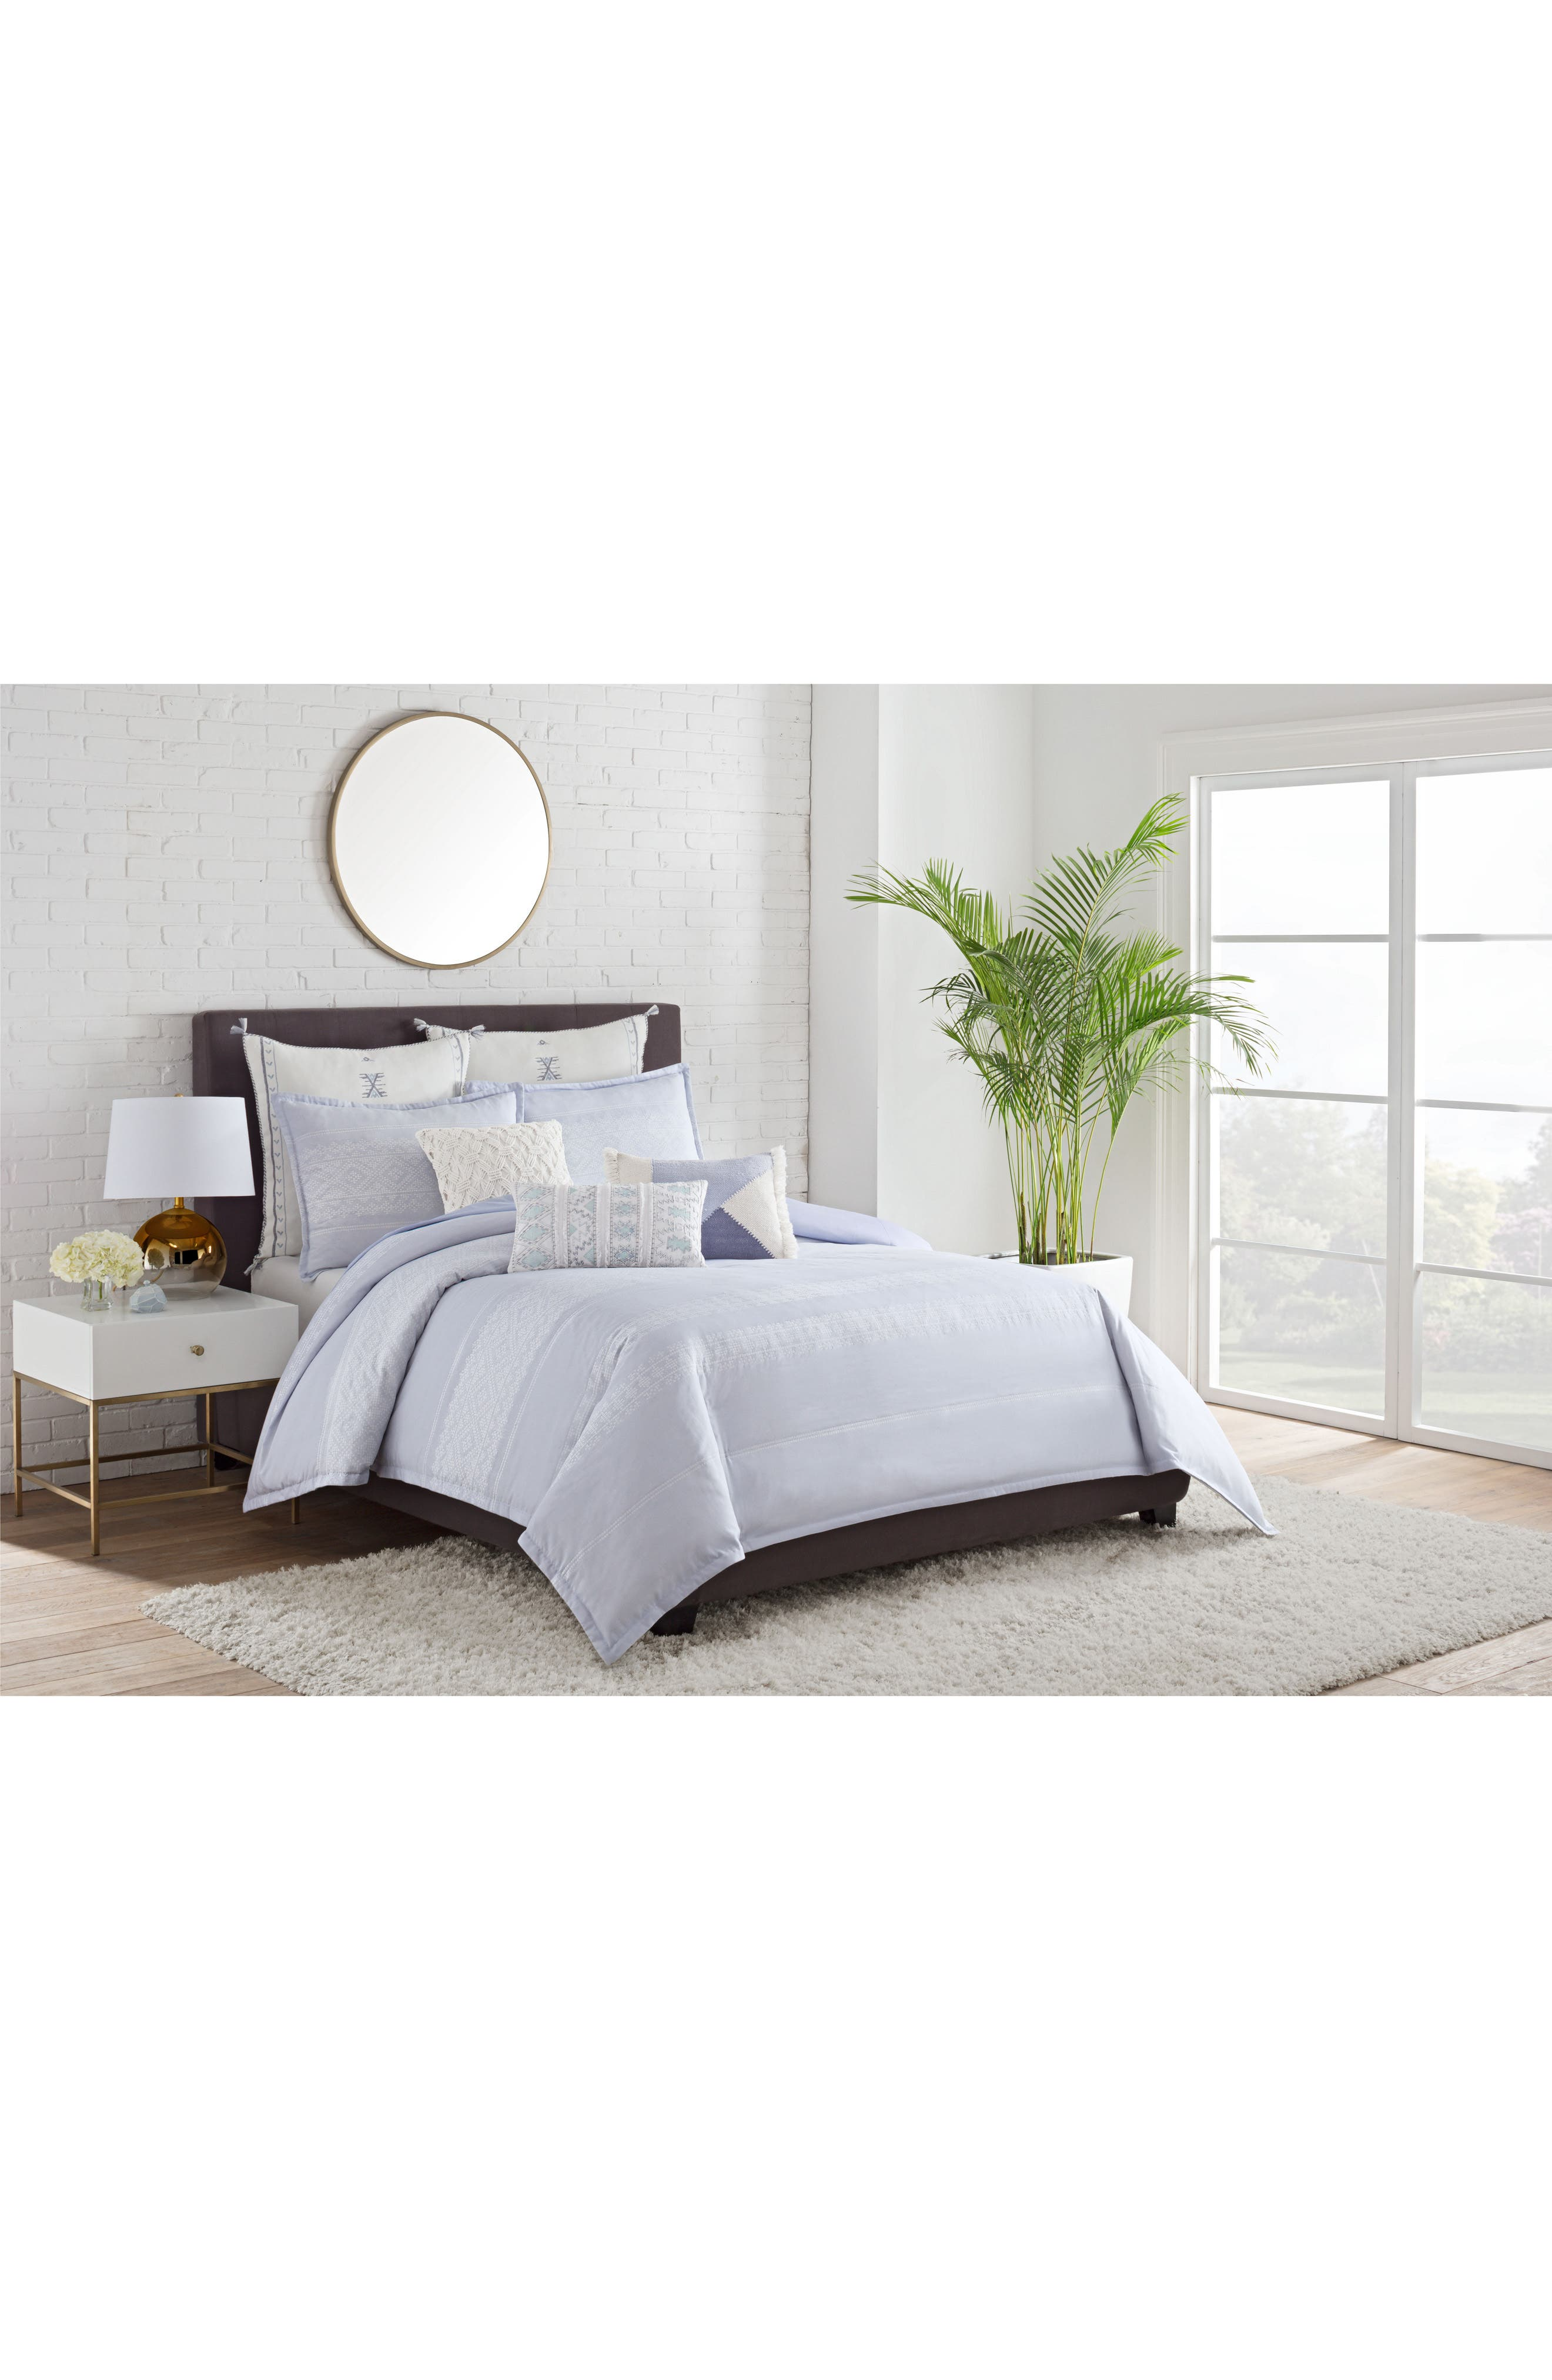 Cupcakes And Cashmere Mosaic Tile Duvet Cover Nordstrom